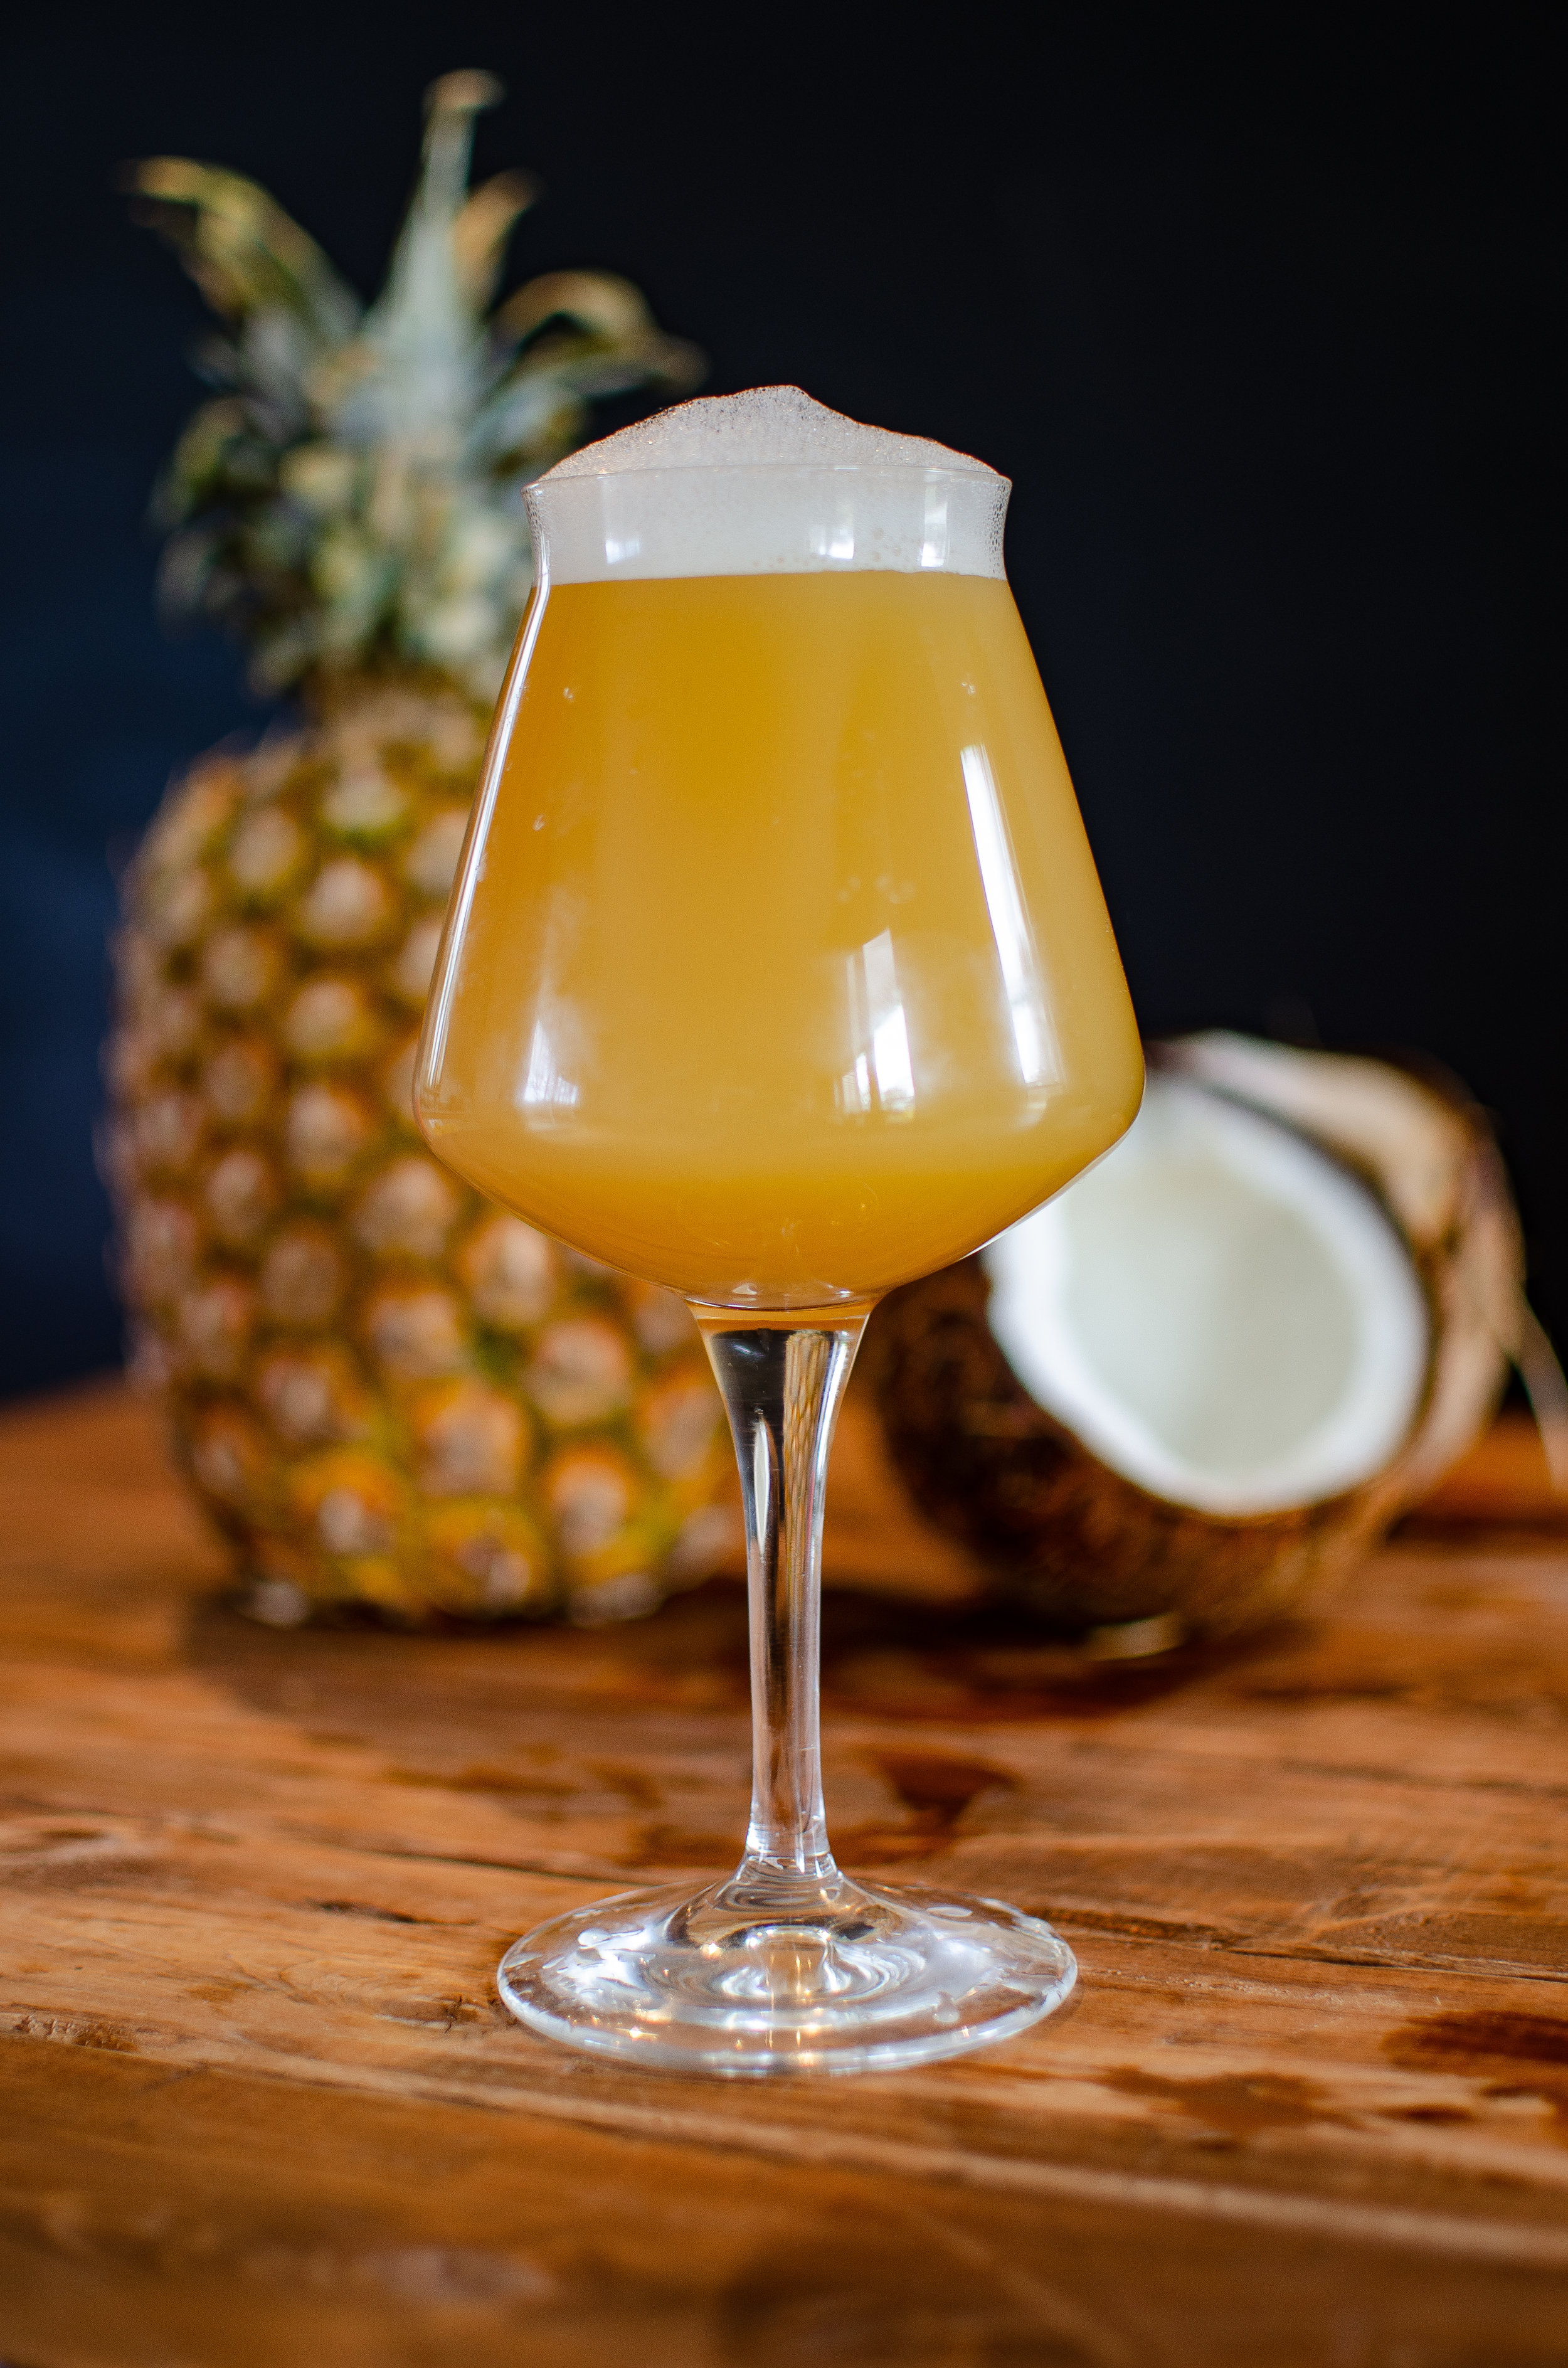 Aloha Summer, Session IPA - ALOHA SUMMER drops Friday. A session IPA with pineapple, coconut, and milk sugar added to create a Pina Colada inspired beer. Slim and trim at 4% abv. This summer slammer won't leave you caught in the rain or face down in the sand.I was tired of my IPAWe'd been together too longLike a worn out recordingOf our favorite songSo while I lay there drinkingI read the Facebook in bedAnd on the Kettlehead pageThere was this post that I read...If you like Pina ColadasAnd getting hops off your brainIf you're not into dark beerIf you want a new strainIf you like drinking till midnight and pounding the beersI'm the love that you've looked forALOHA SUMMER is here ☀️🥥🍍